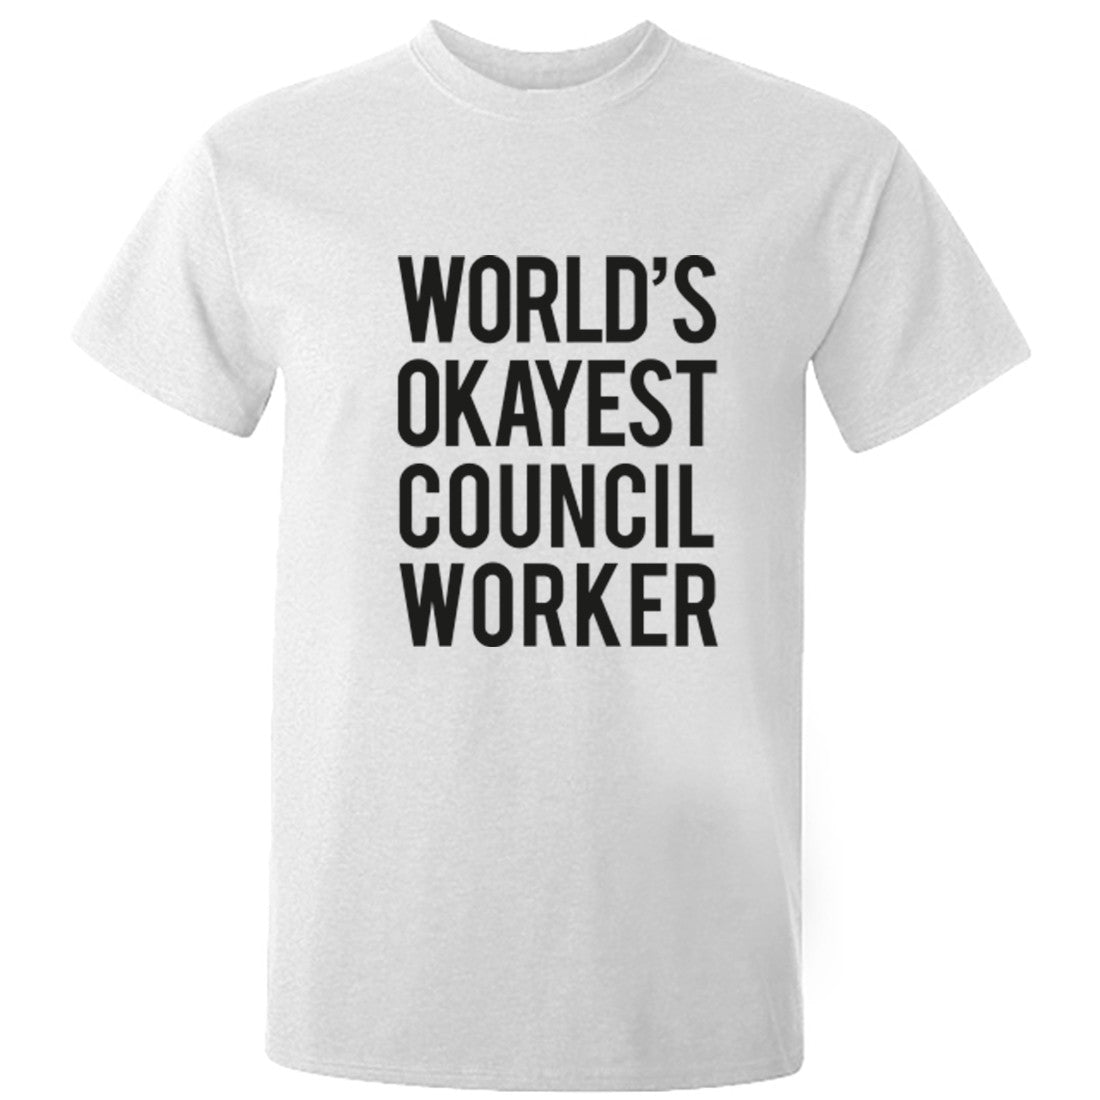 Worlds Okayest Council Worker Unisex Fit T-Shirt K0500